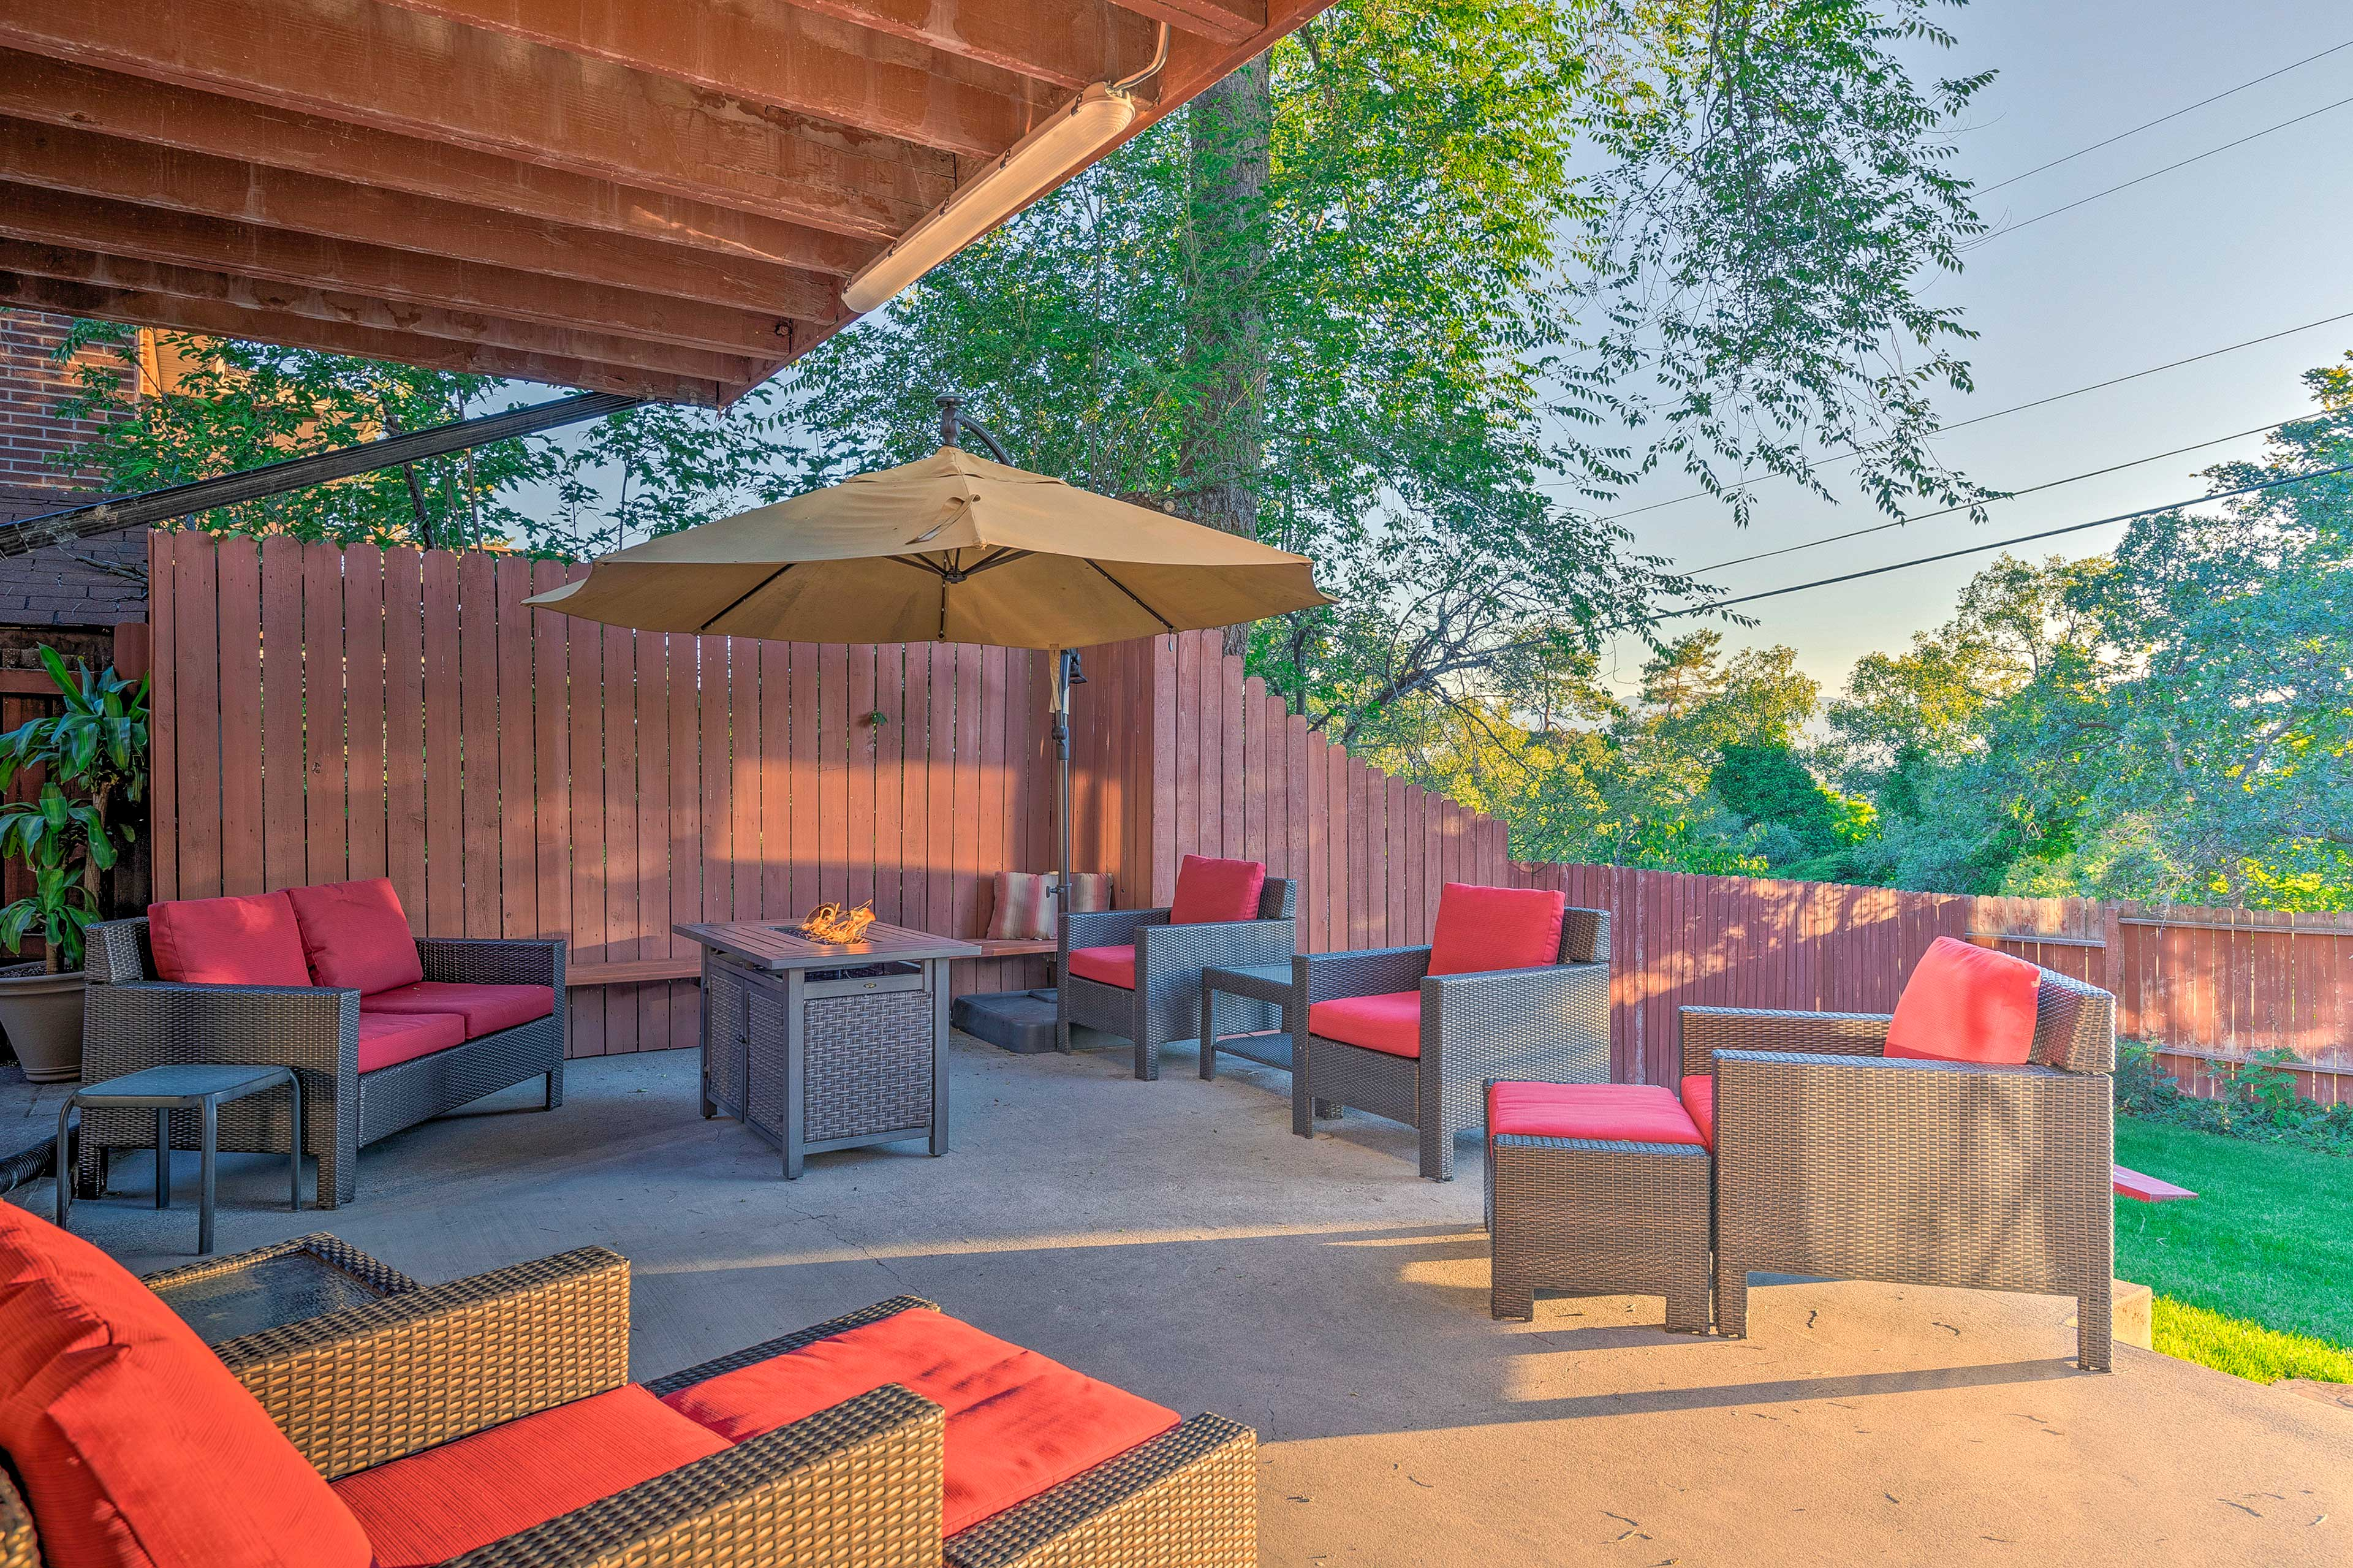 Enjoy happy hour with the entire group on the beautiful patio.